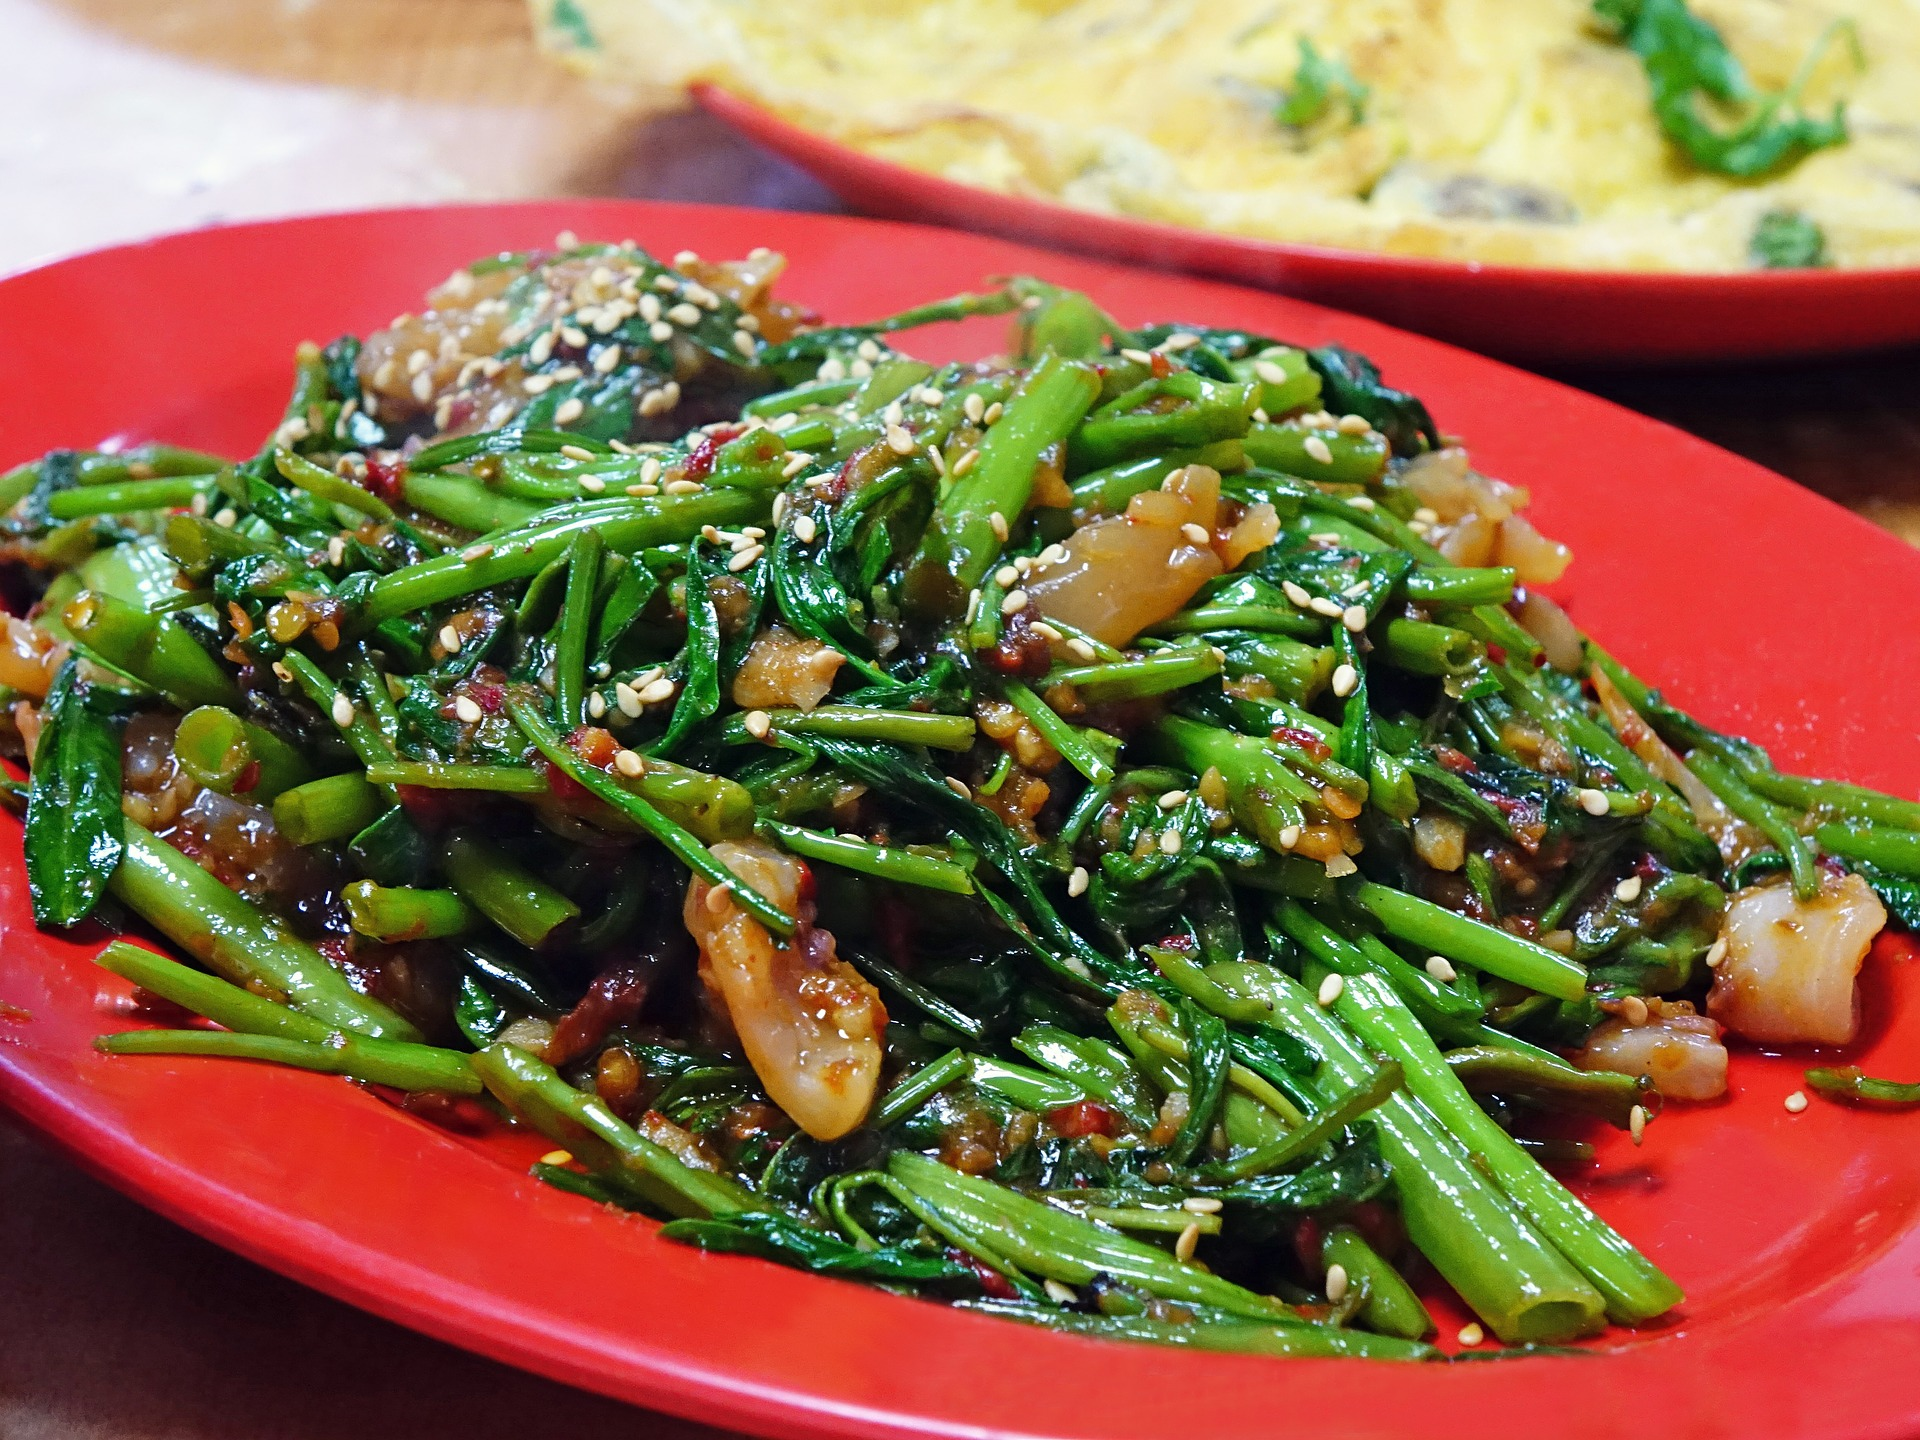 Water Spinach, Dish, Food, Fresh, Restaurant, HQ Photo